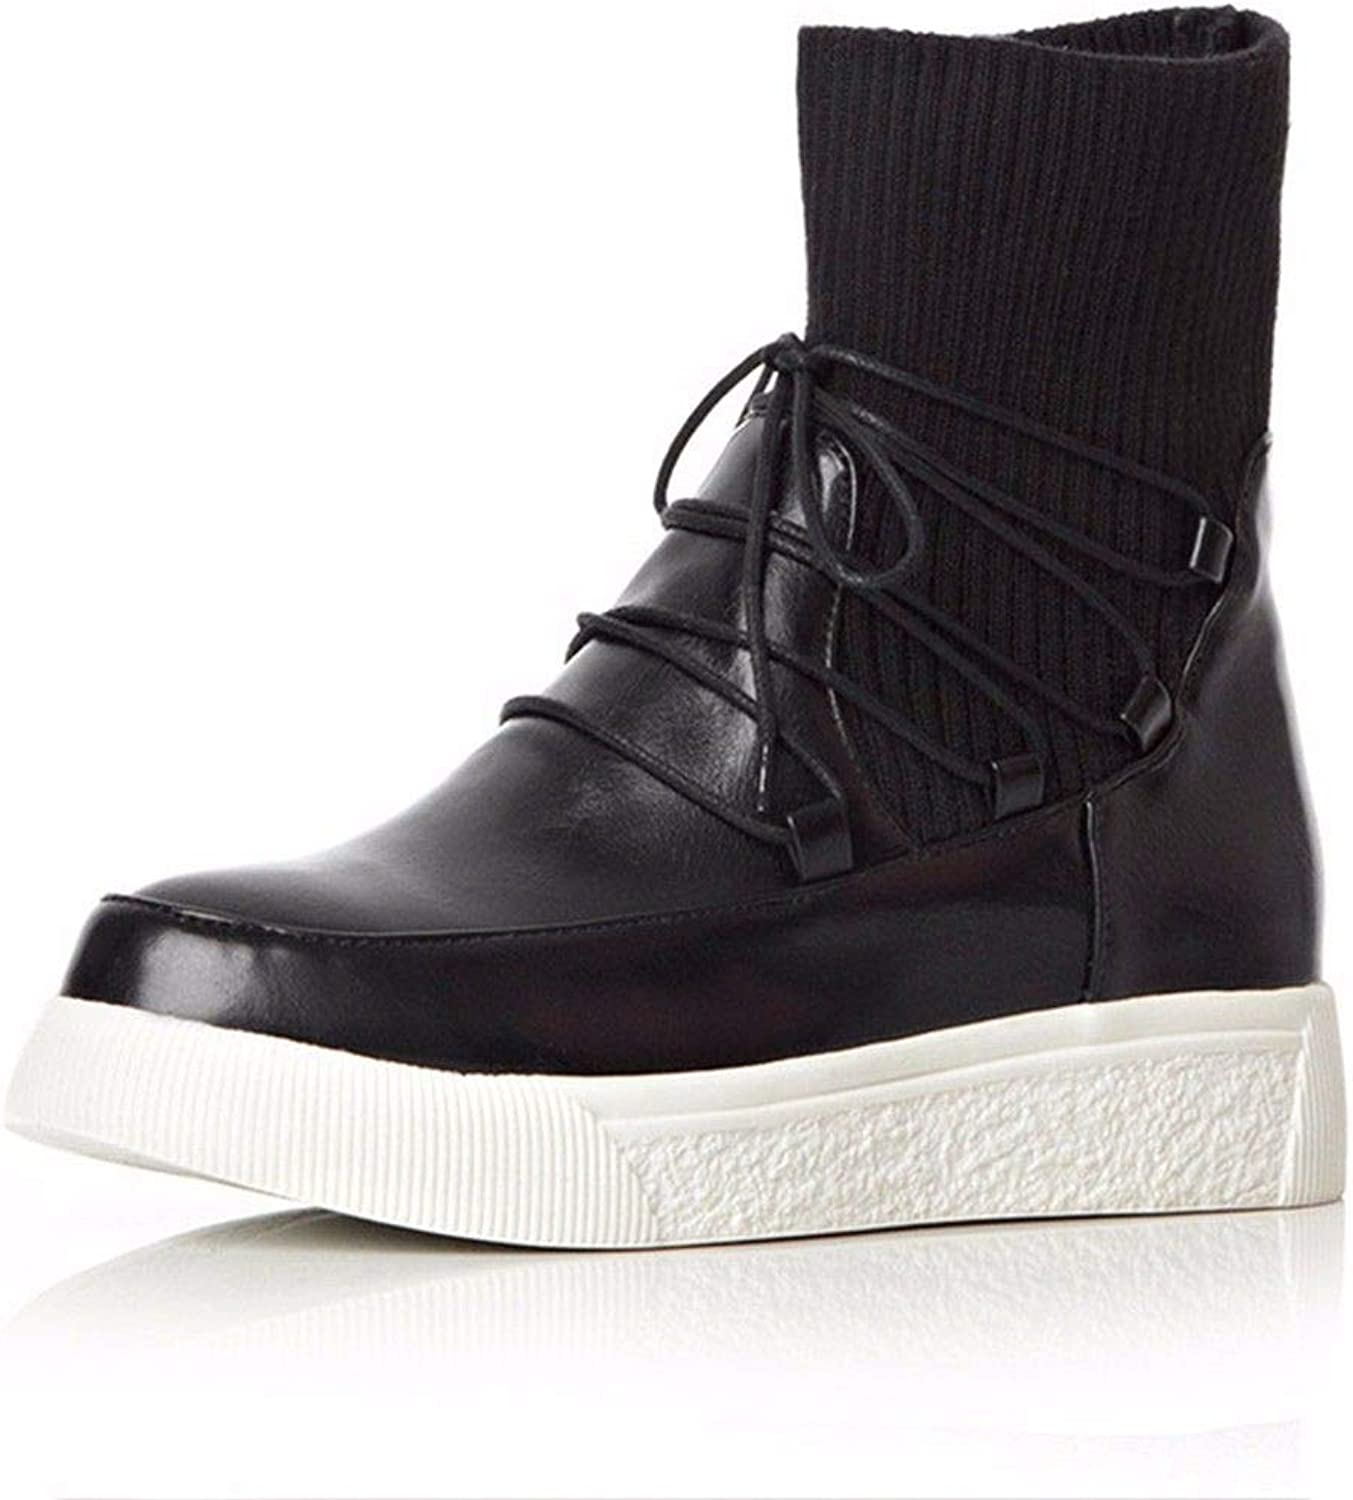 Autumn and Winter Fashion Strap Flat Boots Size Wool Boots Thick Soled Boots